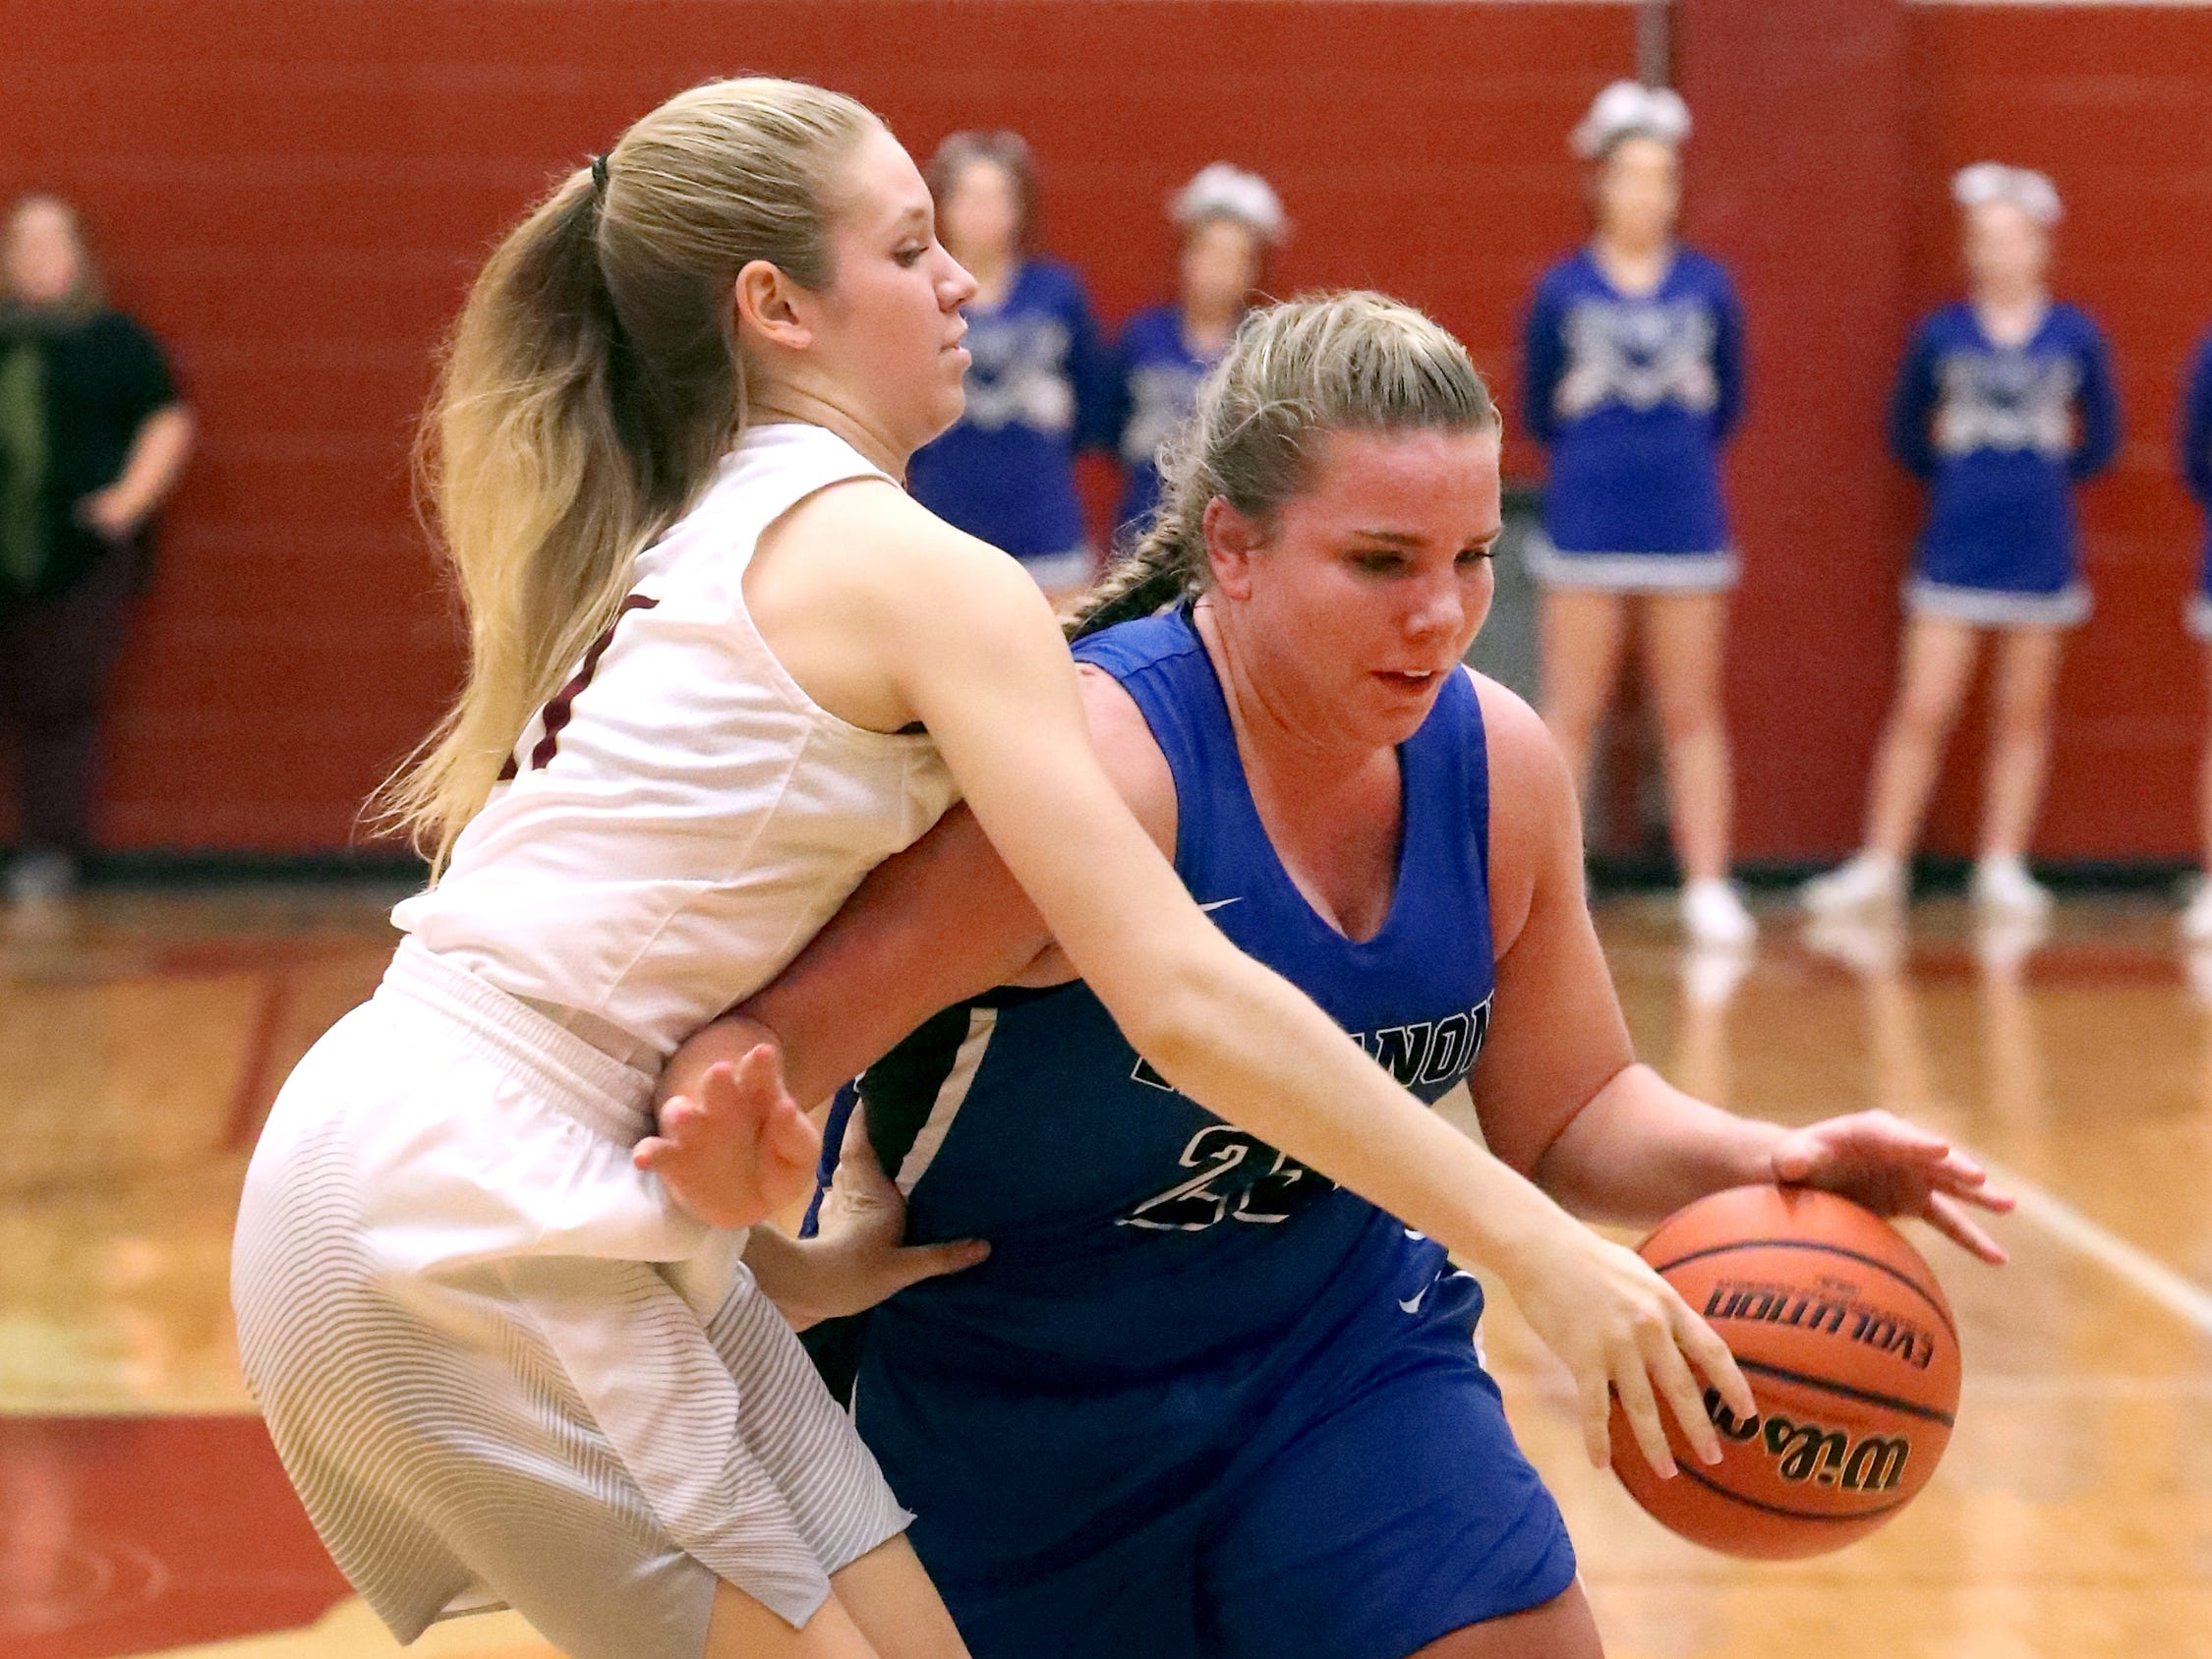 Lebanon's  Allissa Mulaski (25) heads toward the basket as RiverdaleÕs Lauren Hosford (21) guards her during the game at Riverdale on Friday, Nov. 30, 2018.